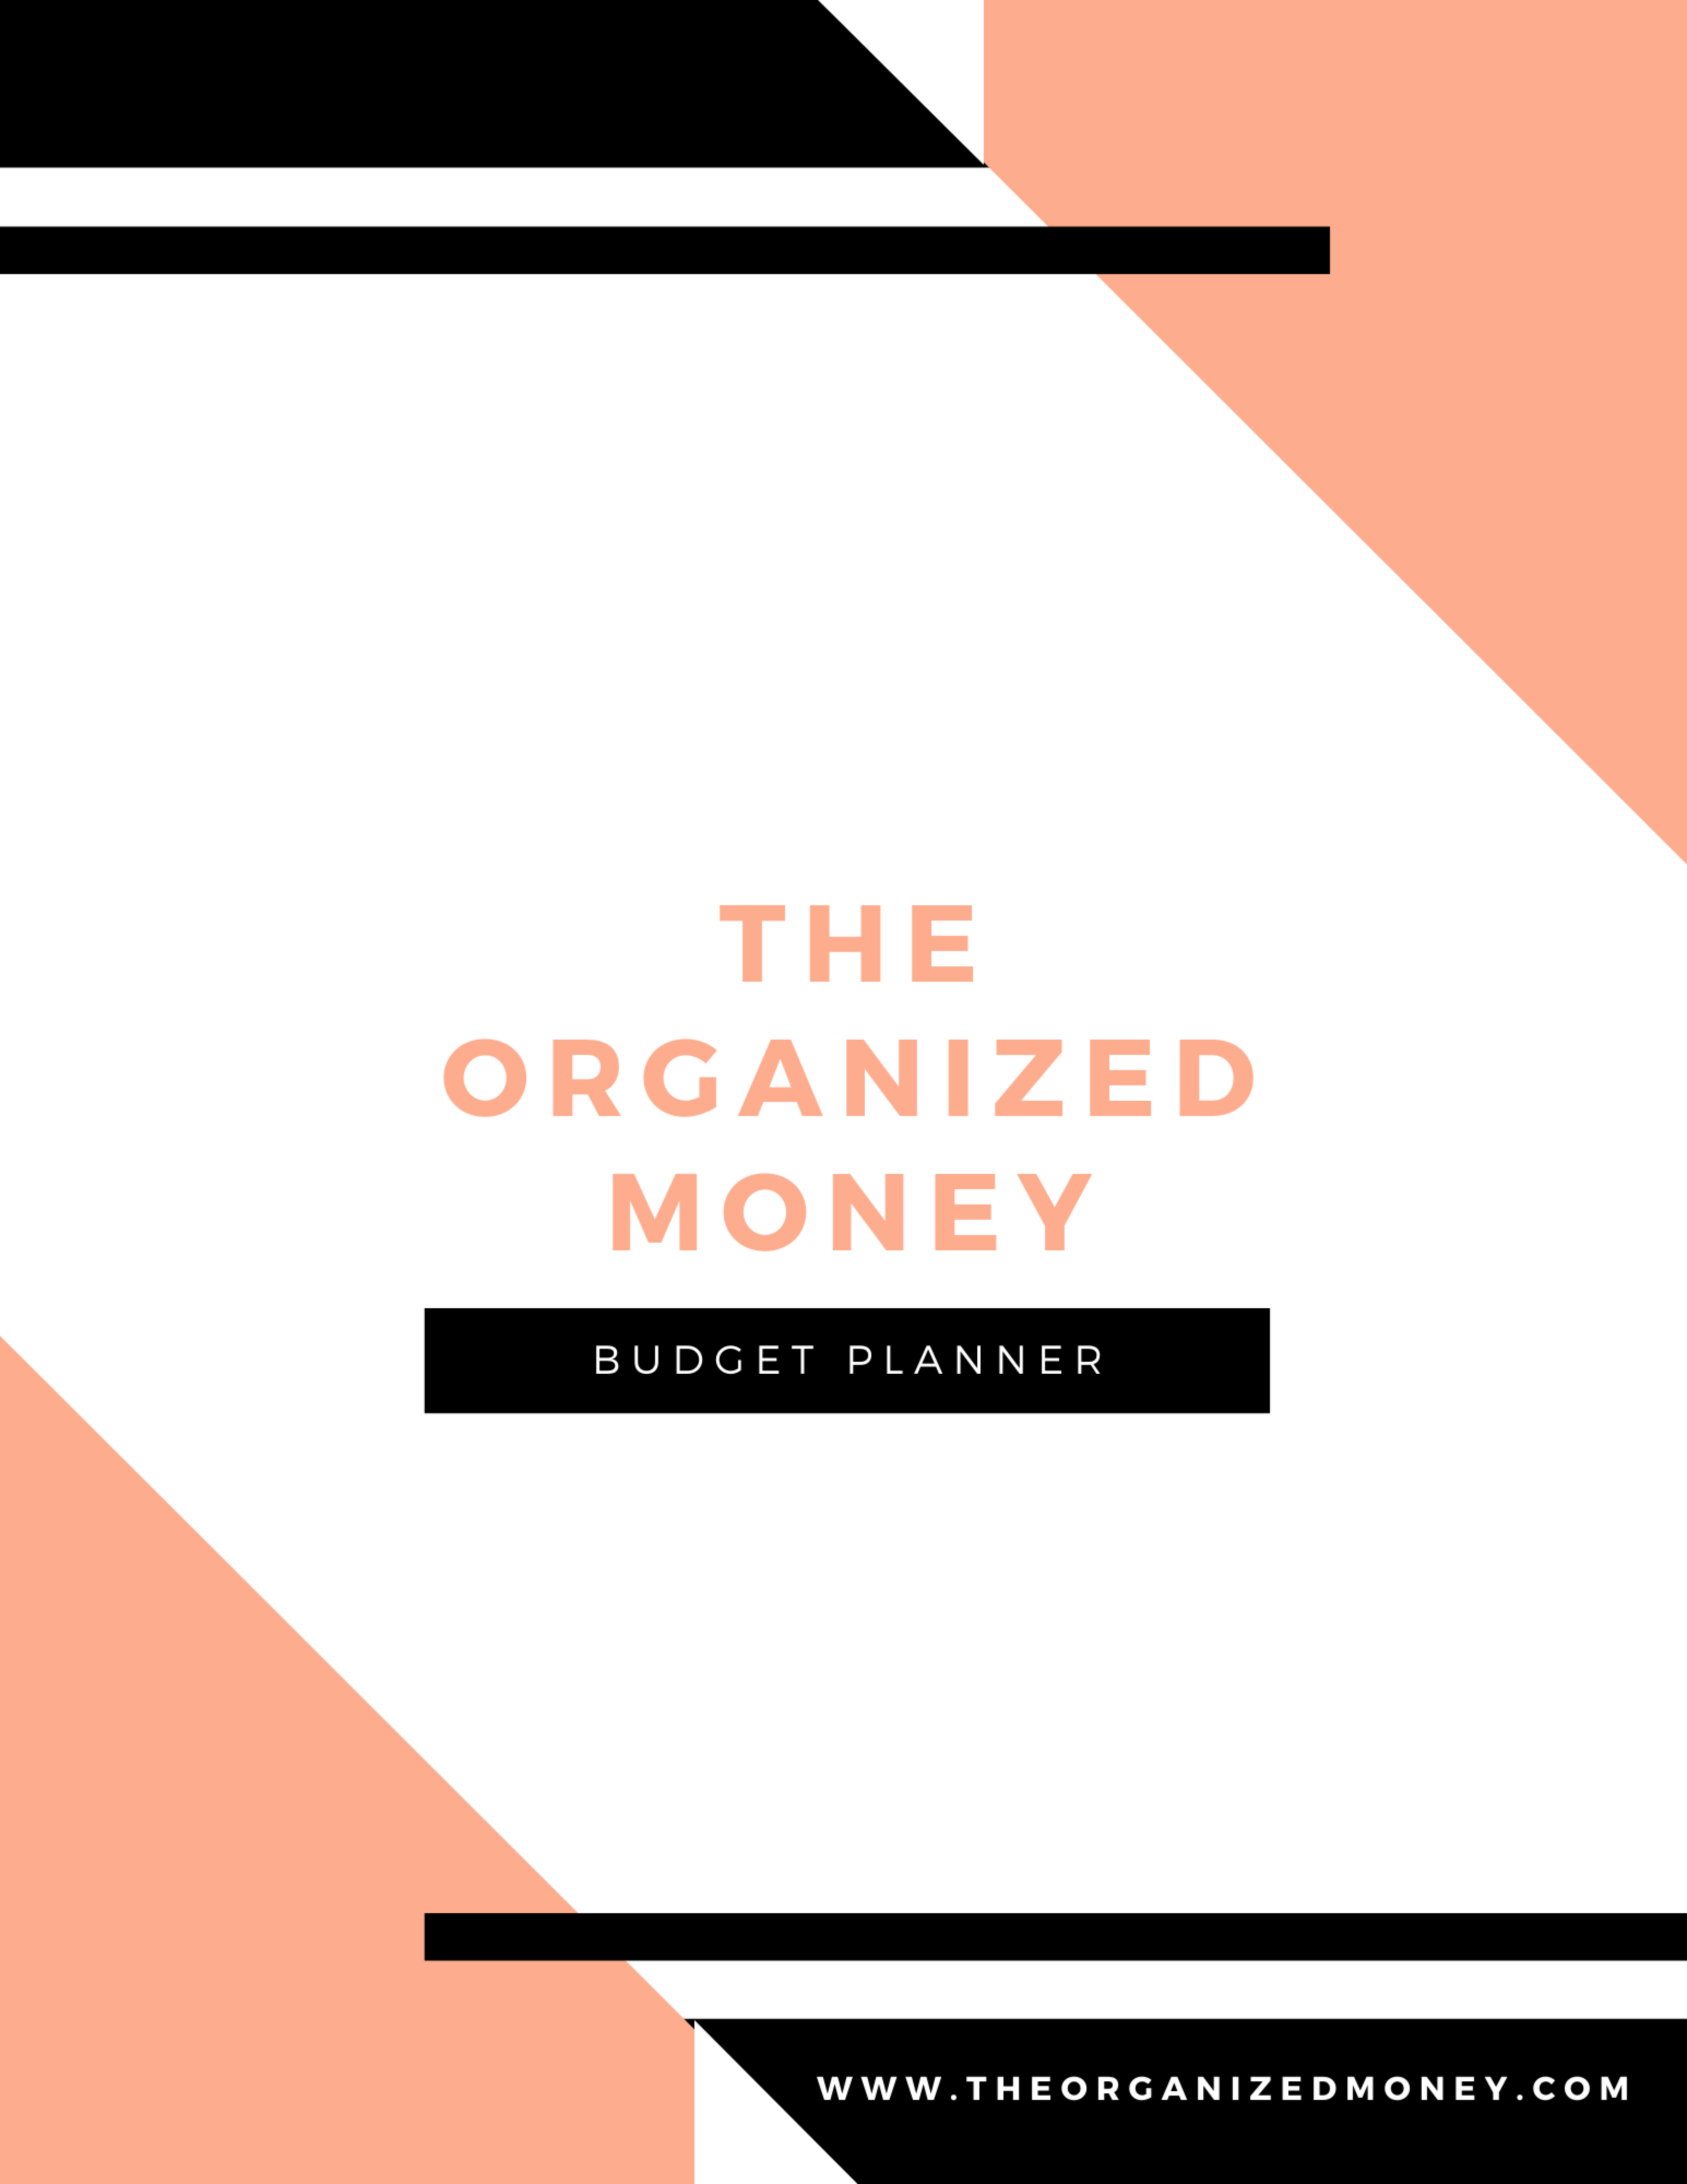 The Organized Money Budget Planner Download